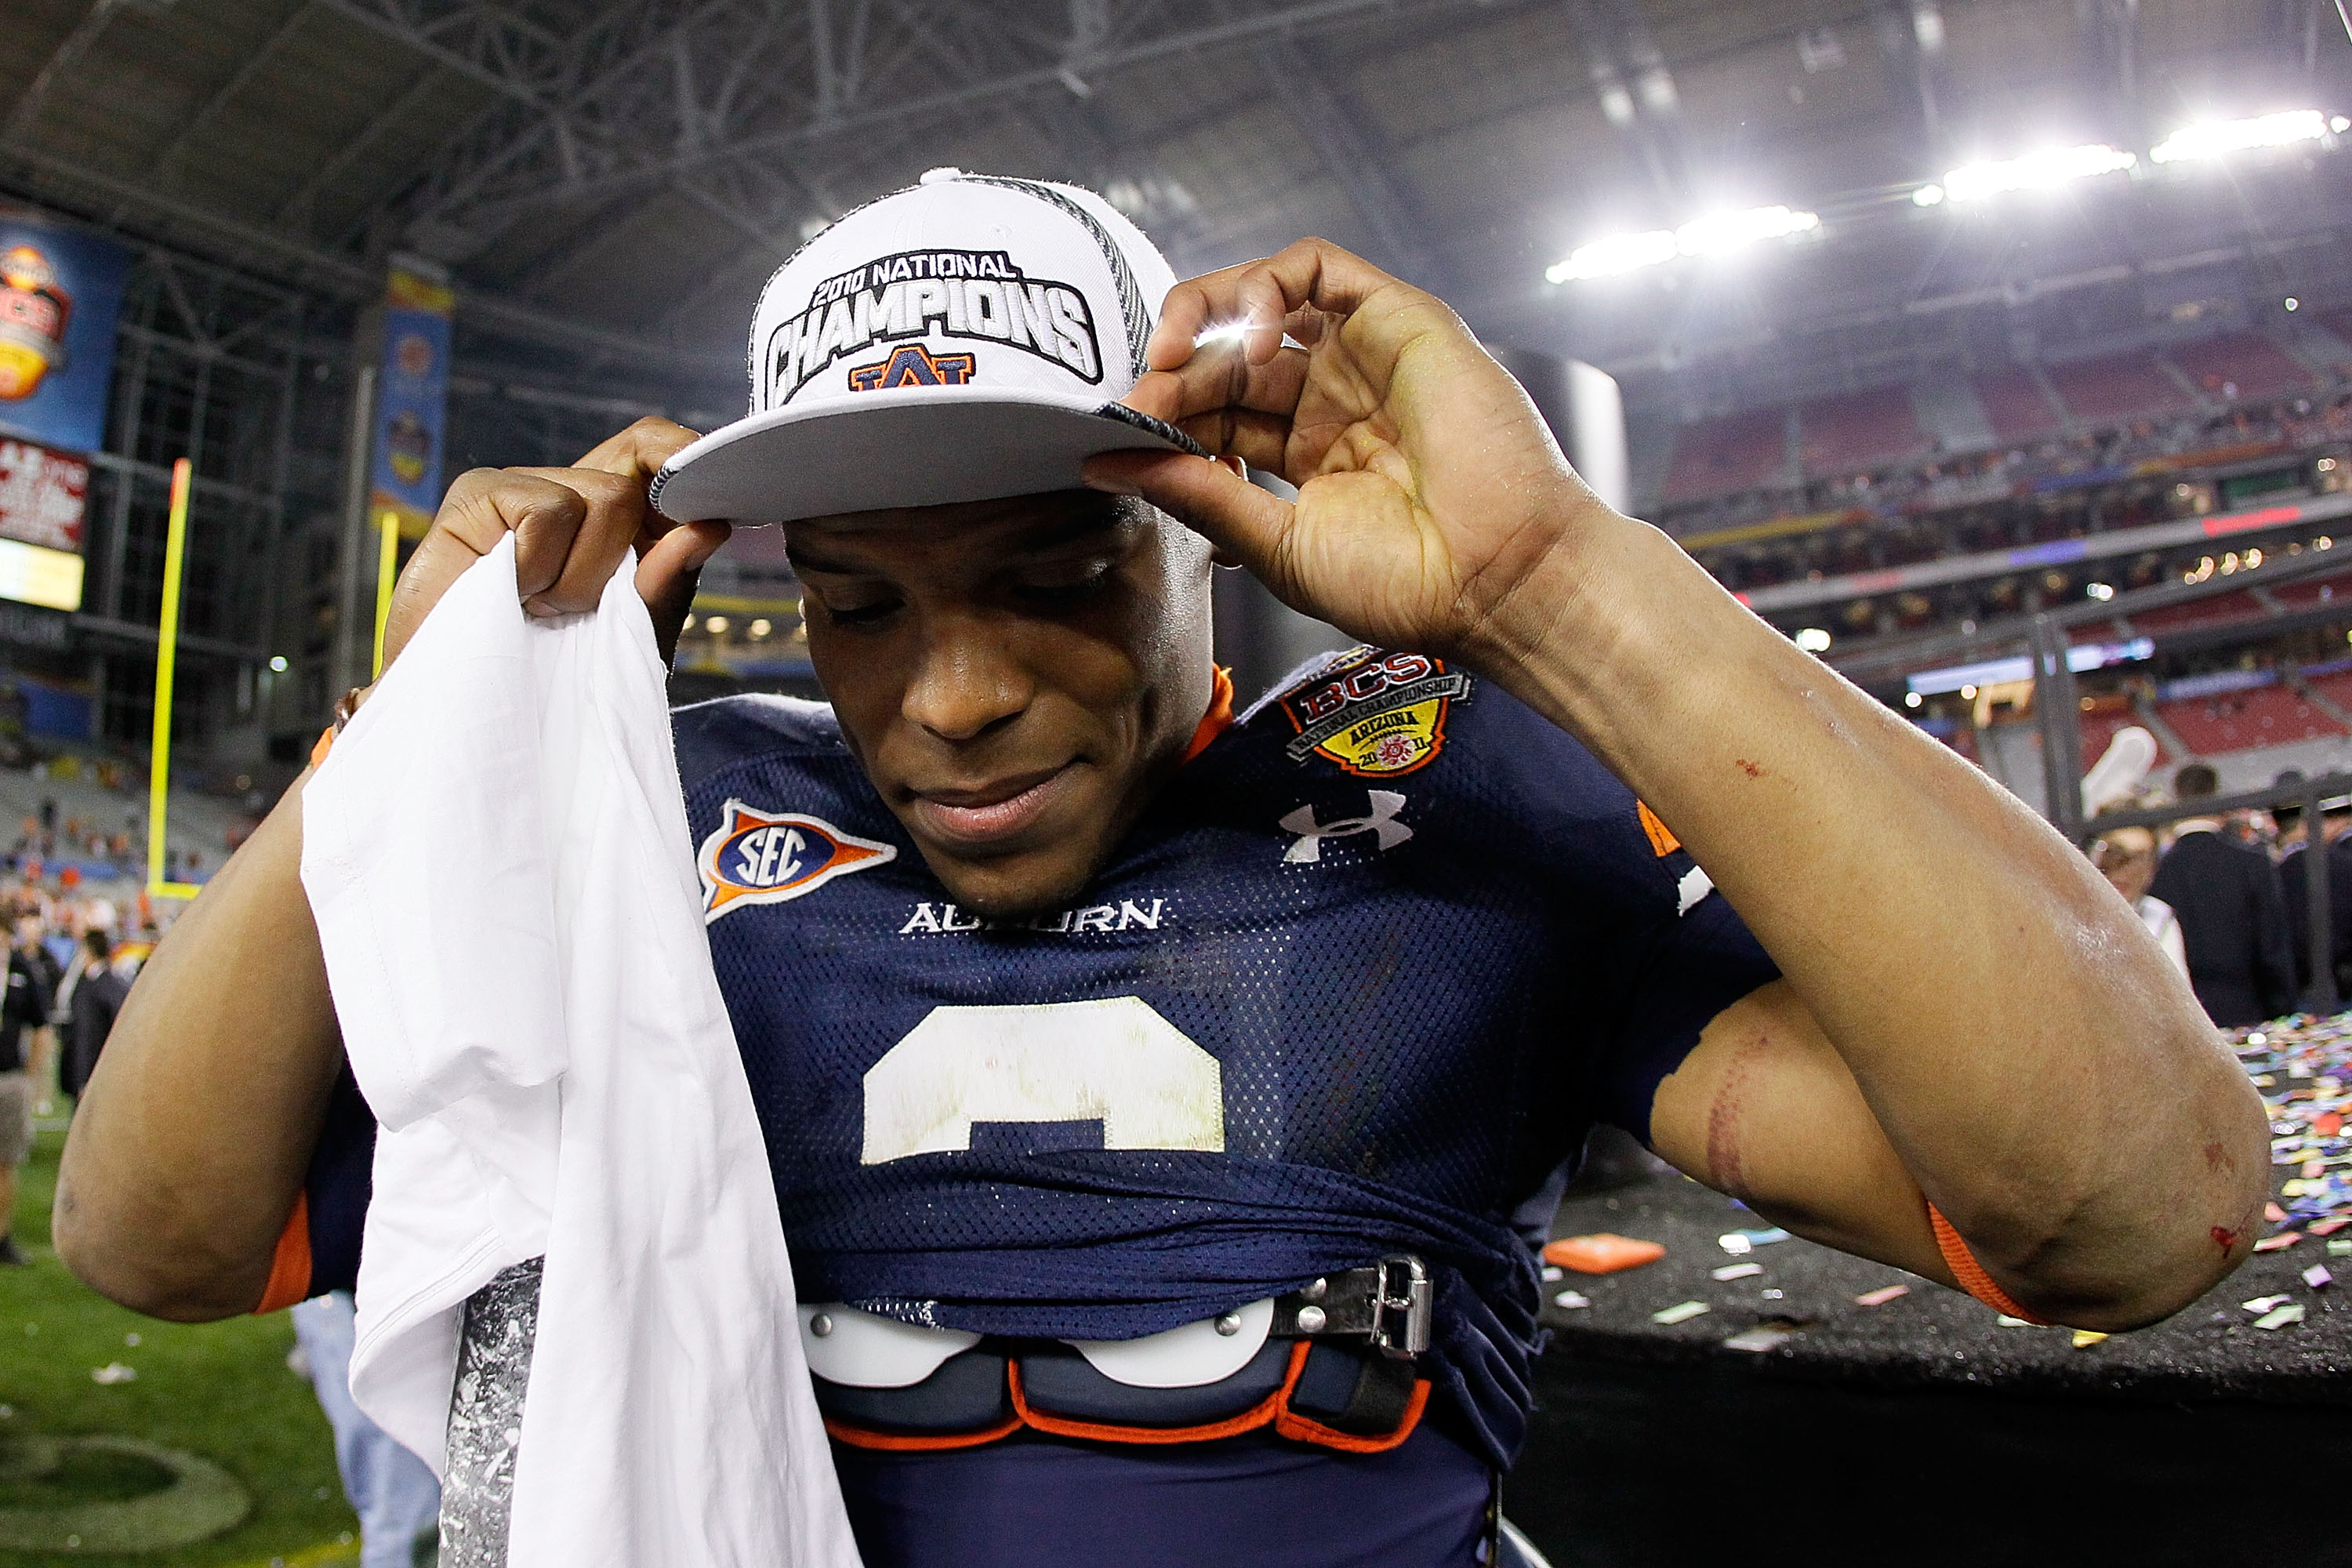 GLENDALE, AZ - JANUARY 10:  Quarterback Cameron Newton #2 of the Auburn Tigers celebrates the Tigers 22-19 victory against the Oregon Ducks in the Tostitos BCS National Championship Game at University of Phoenix Stadium on January 10, 2011 in Glendale, Ar